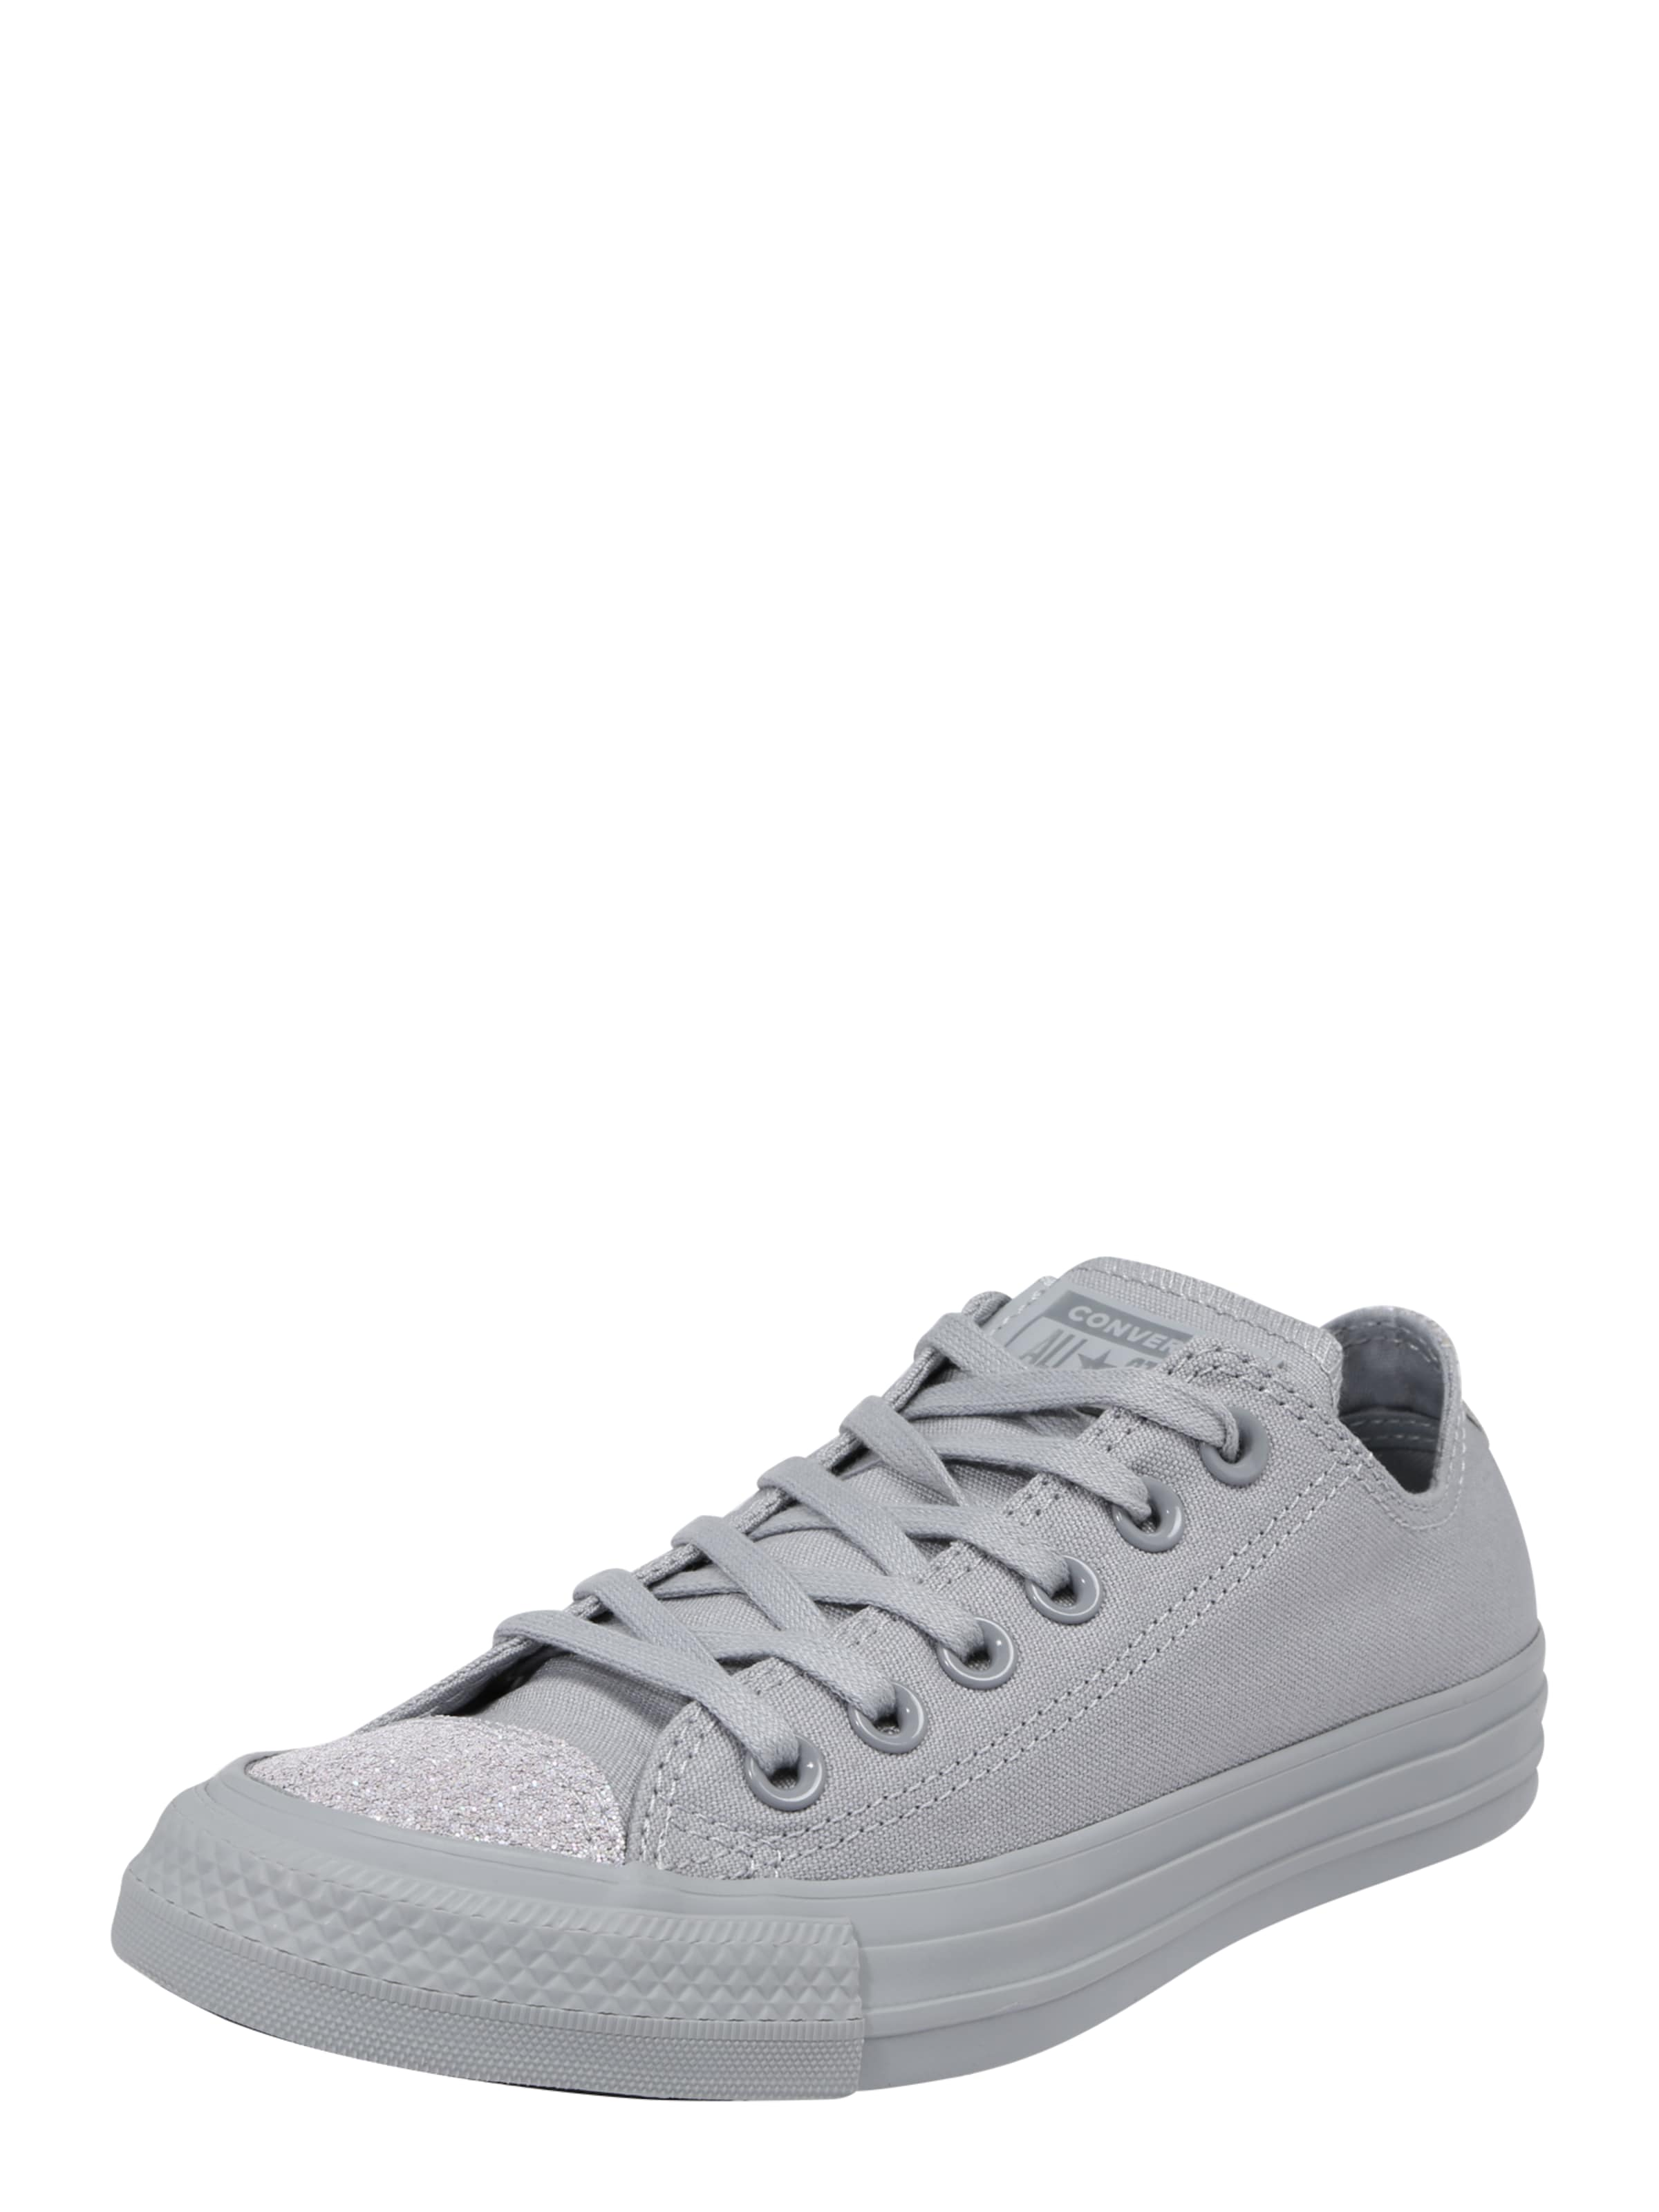 'chuck Baskets Gris En All Taylor Converse Star' Basses ClairArgent Yyb76vIgmf